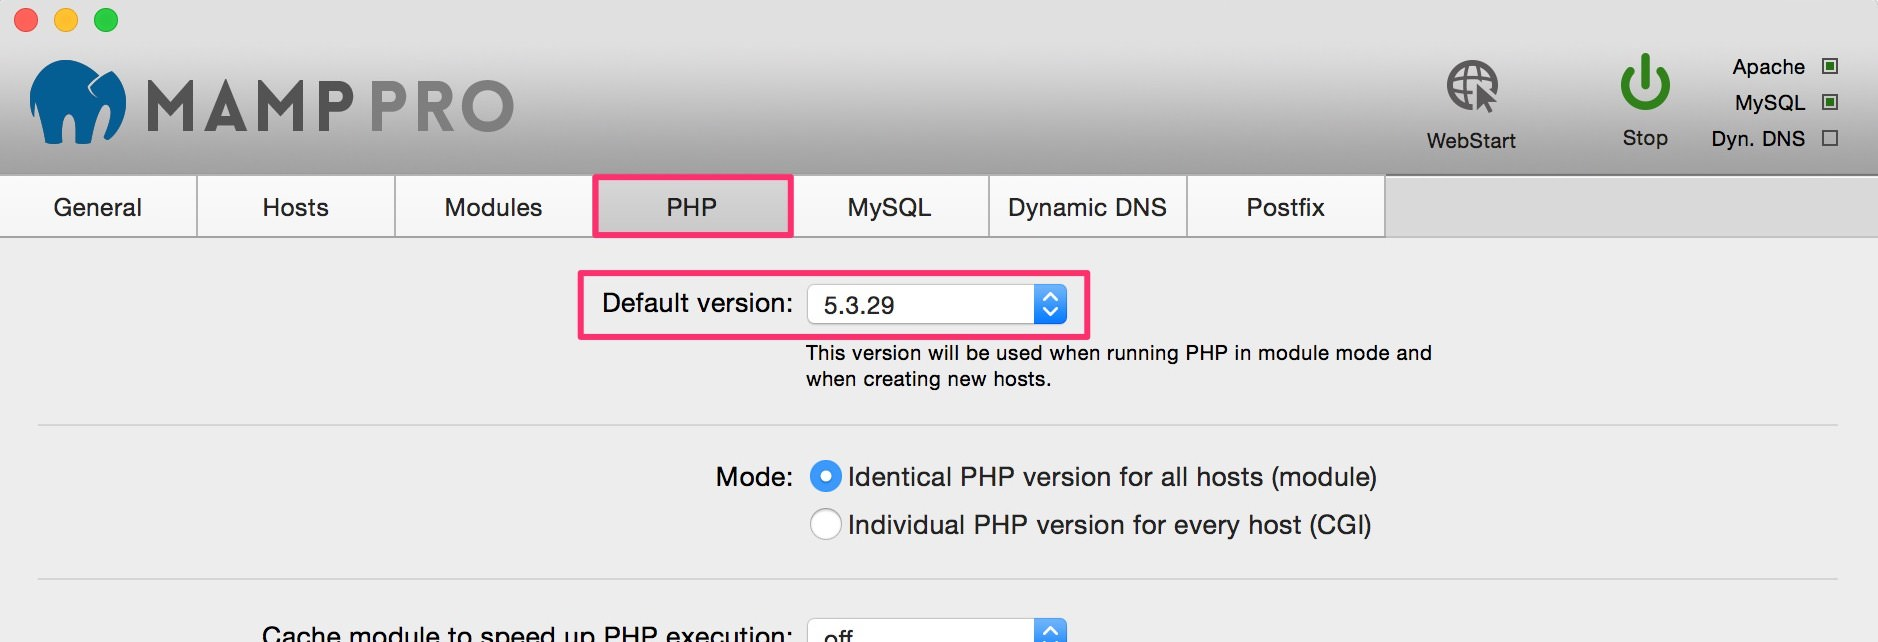 MAMP default PHP version